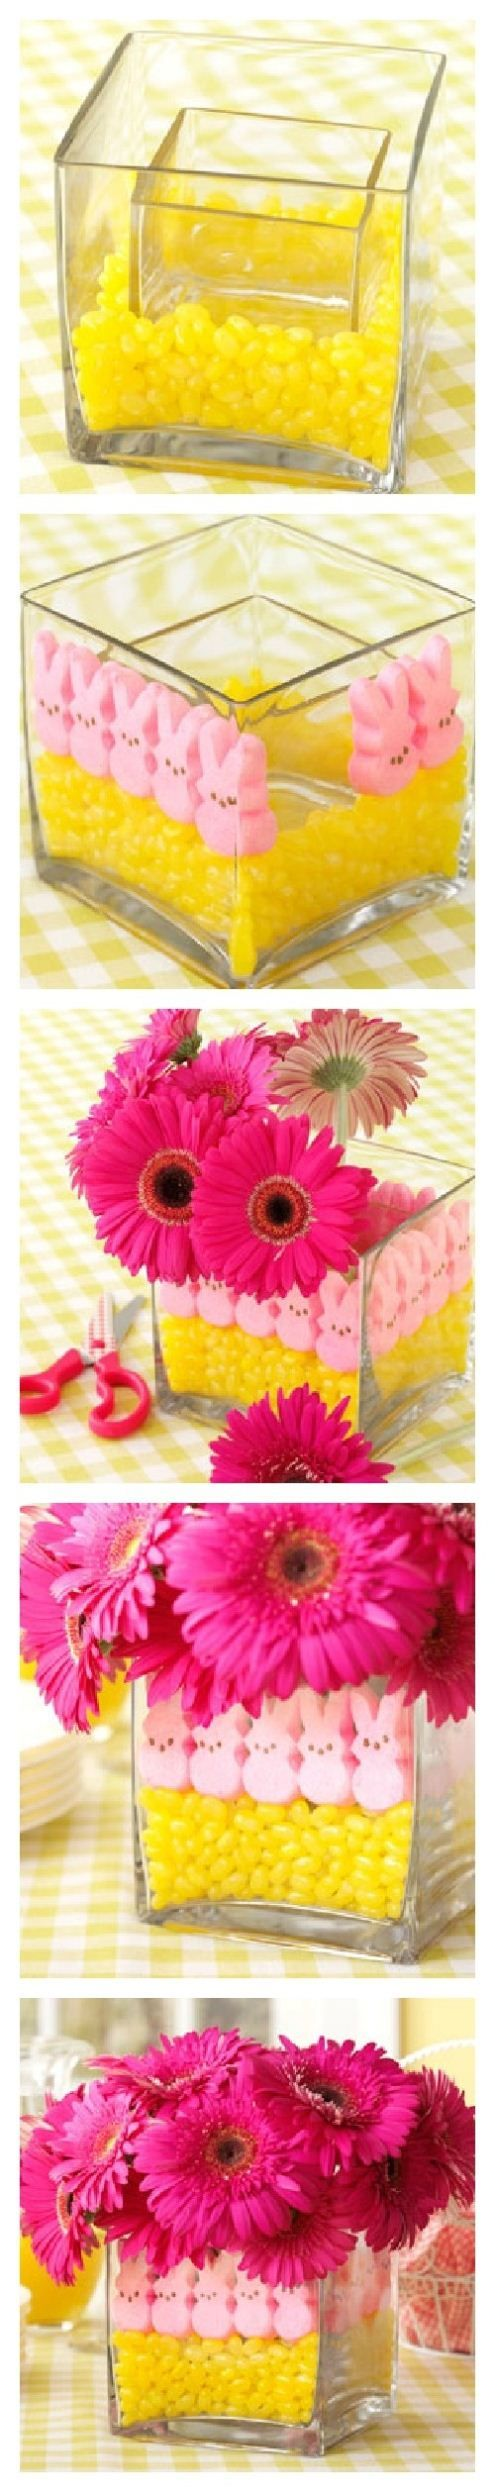 Create this adorable Peeps themed vase!